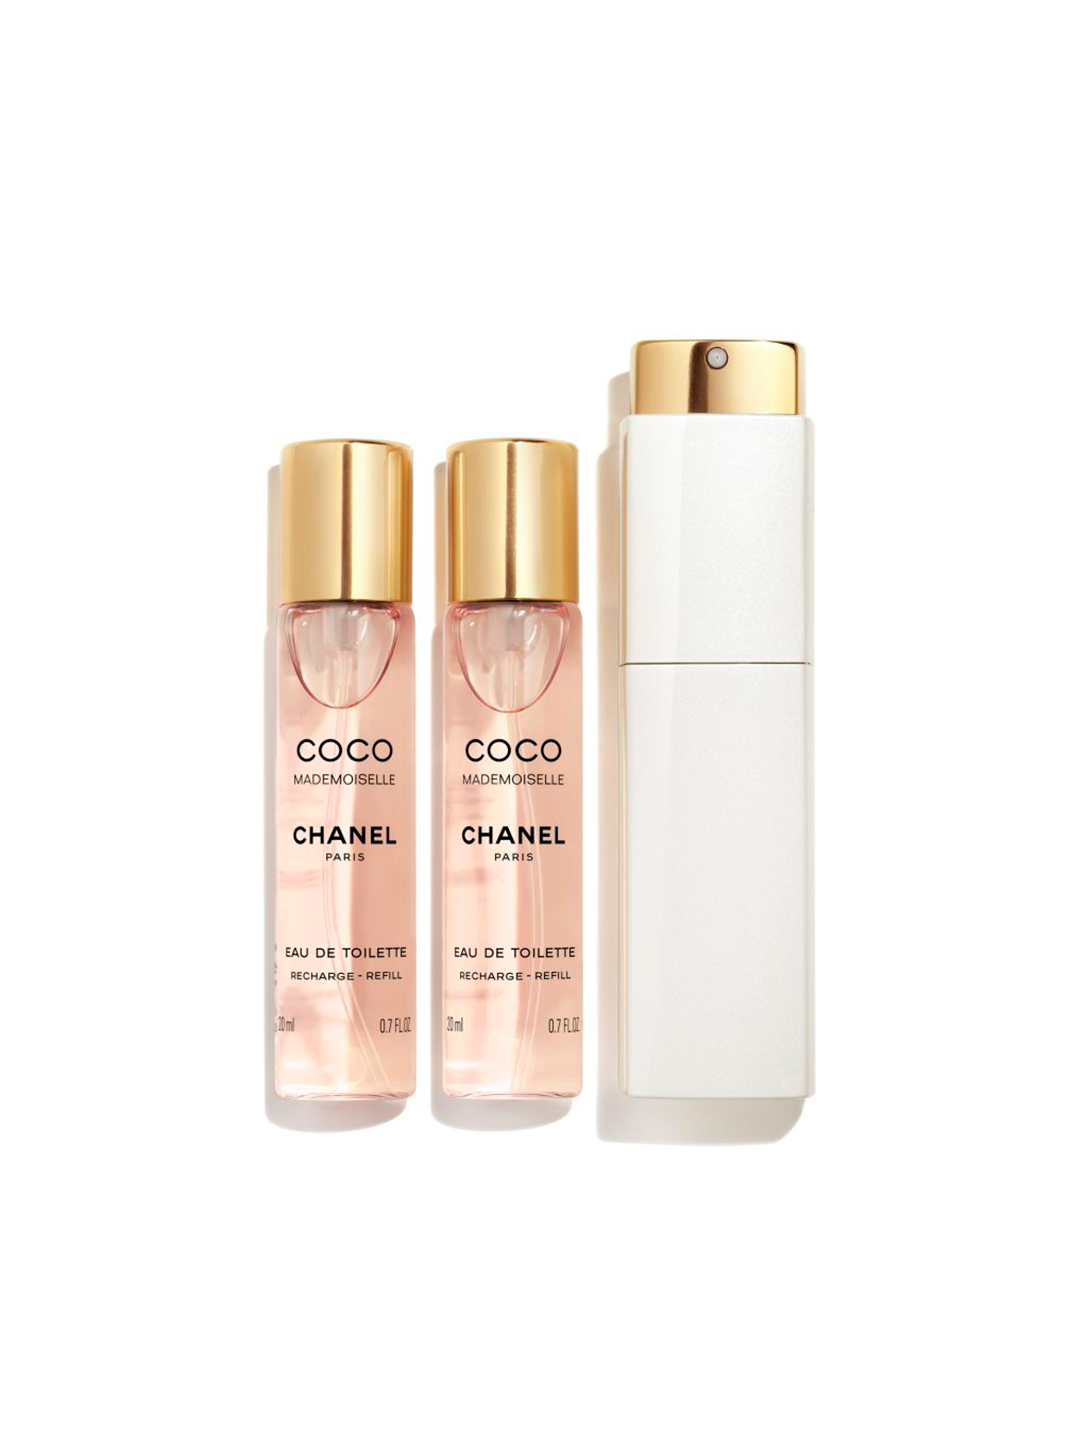 CHANEL Eau de toilette Twist and Spray Beauté